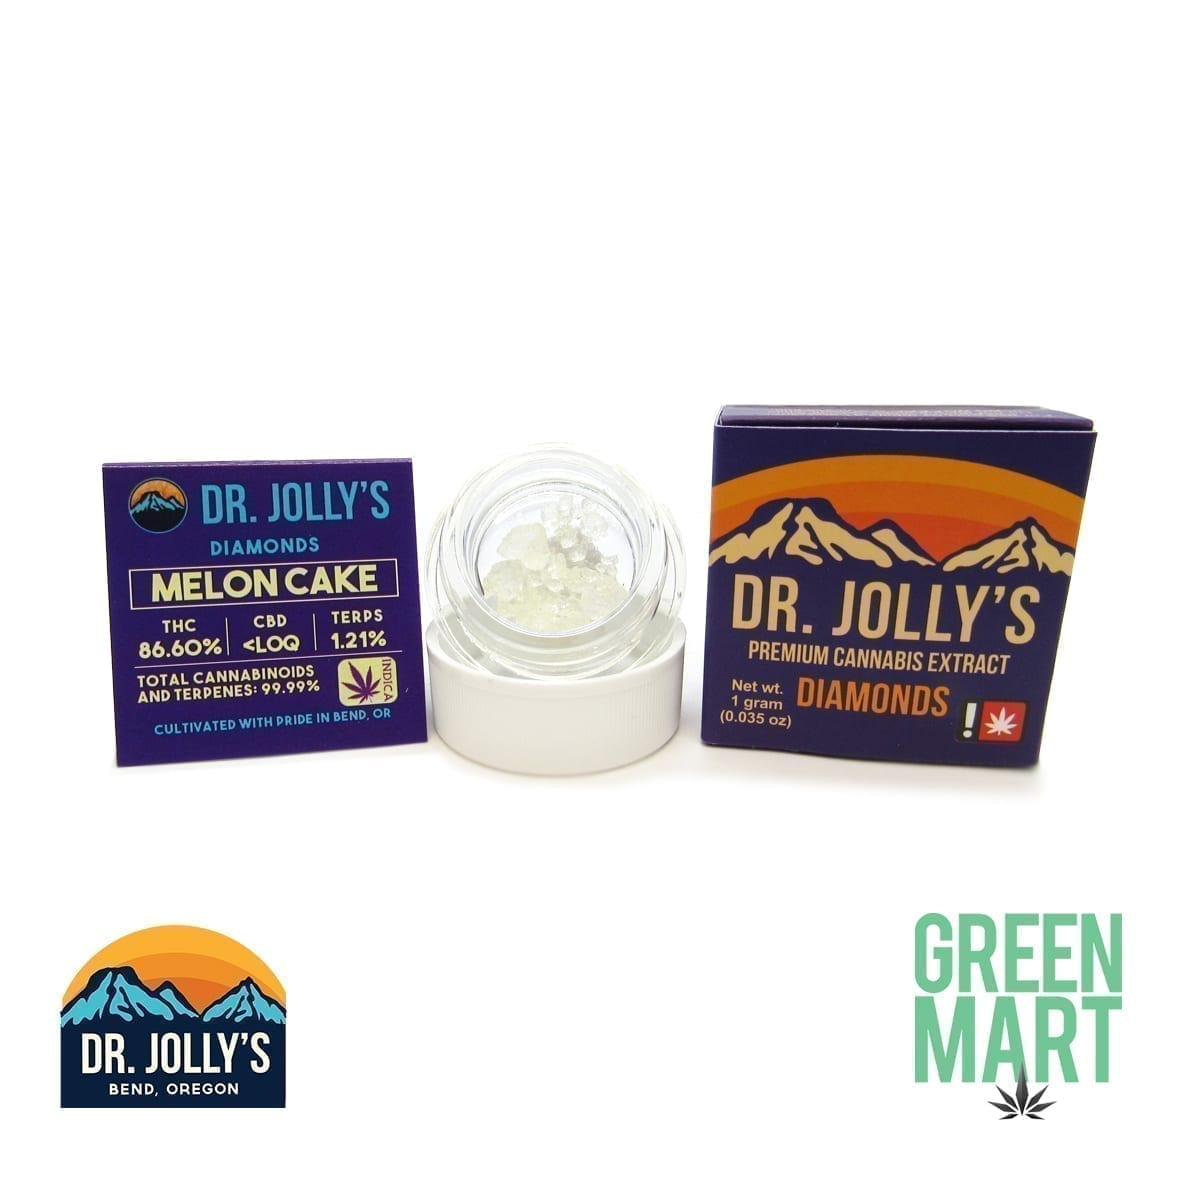 Dr. Jolly's Extracts - Melon Cake Diamonds